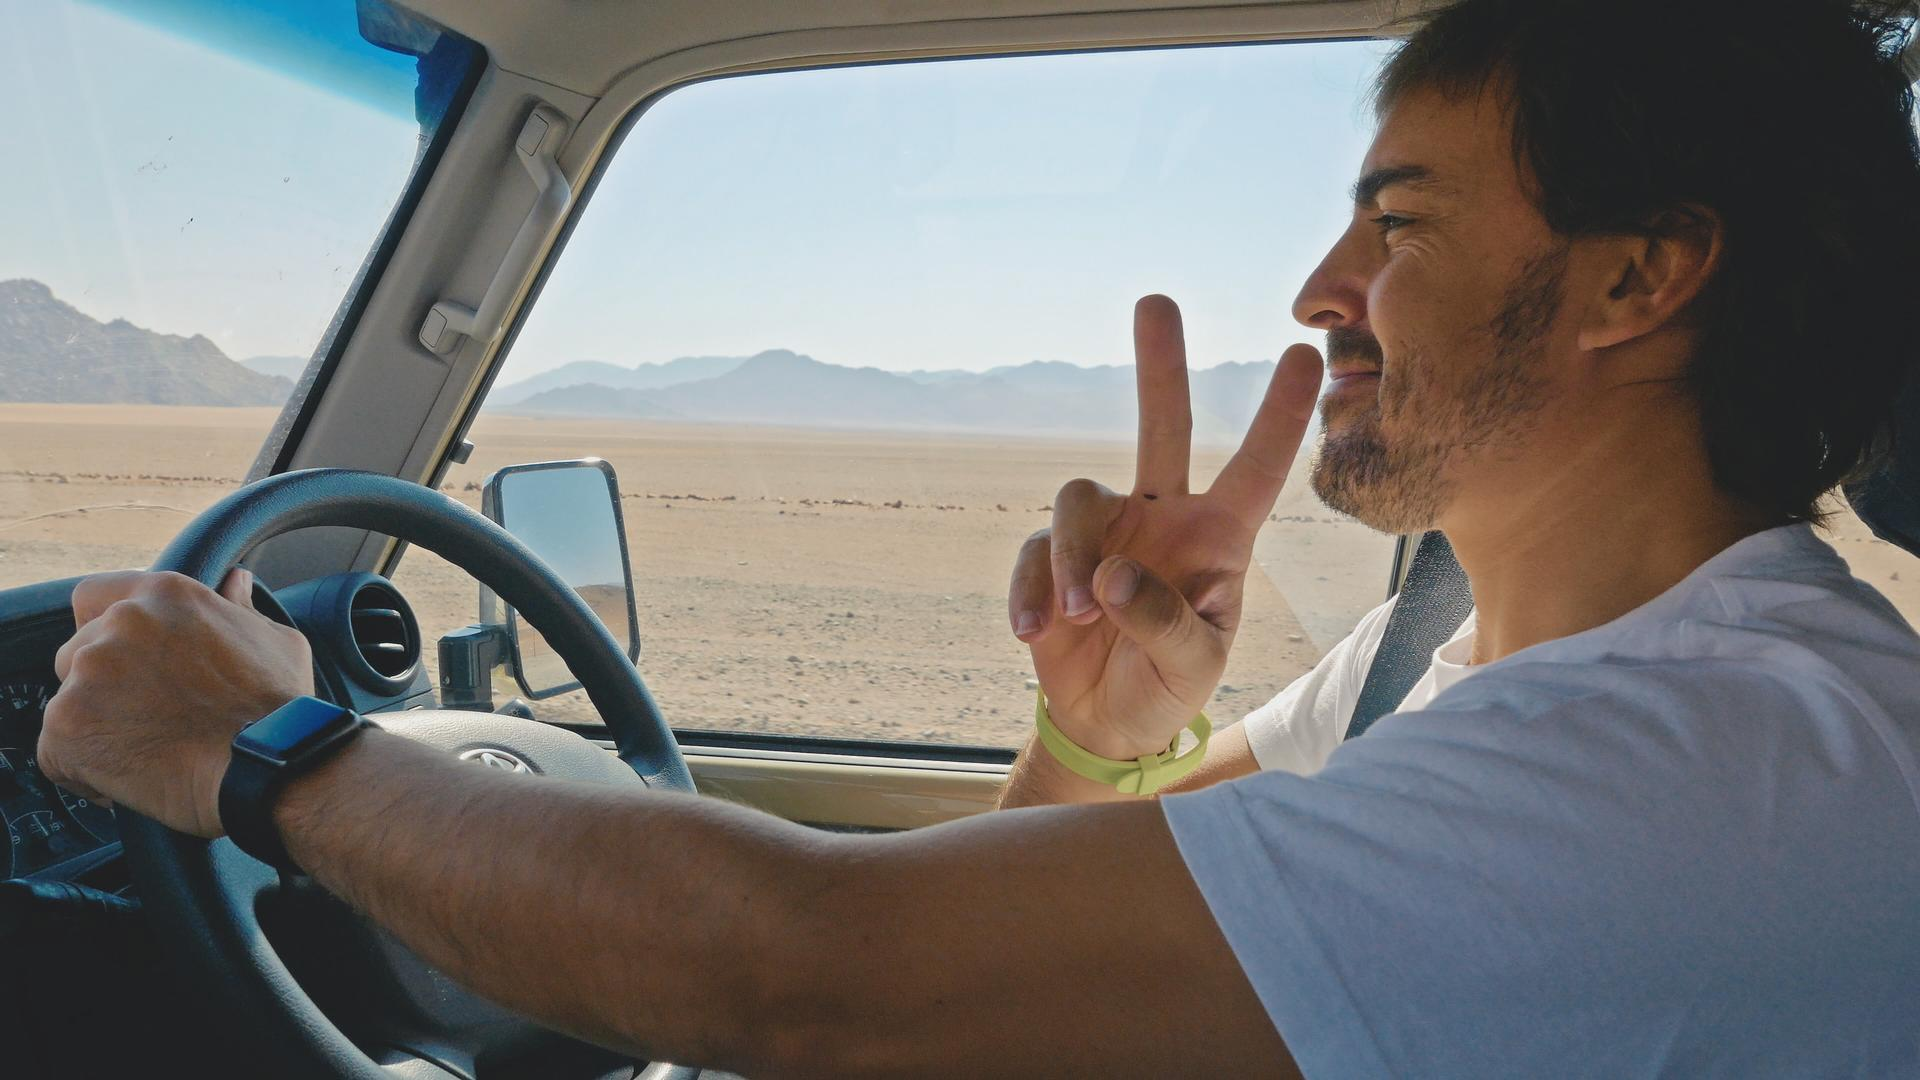 Fernando Alonso gives a V for victory sign as he drives in the desert